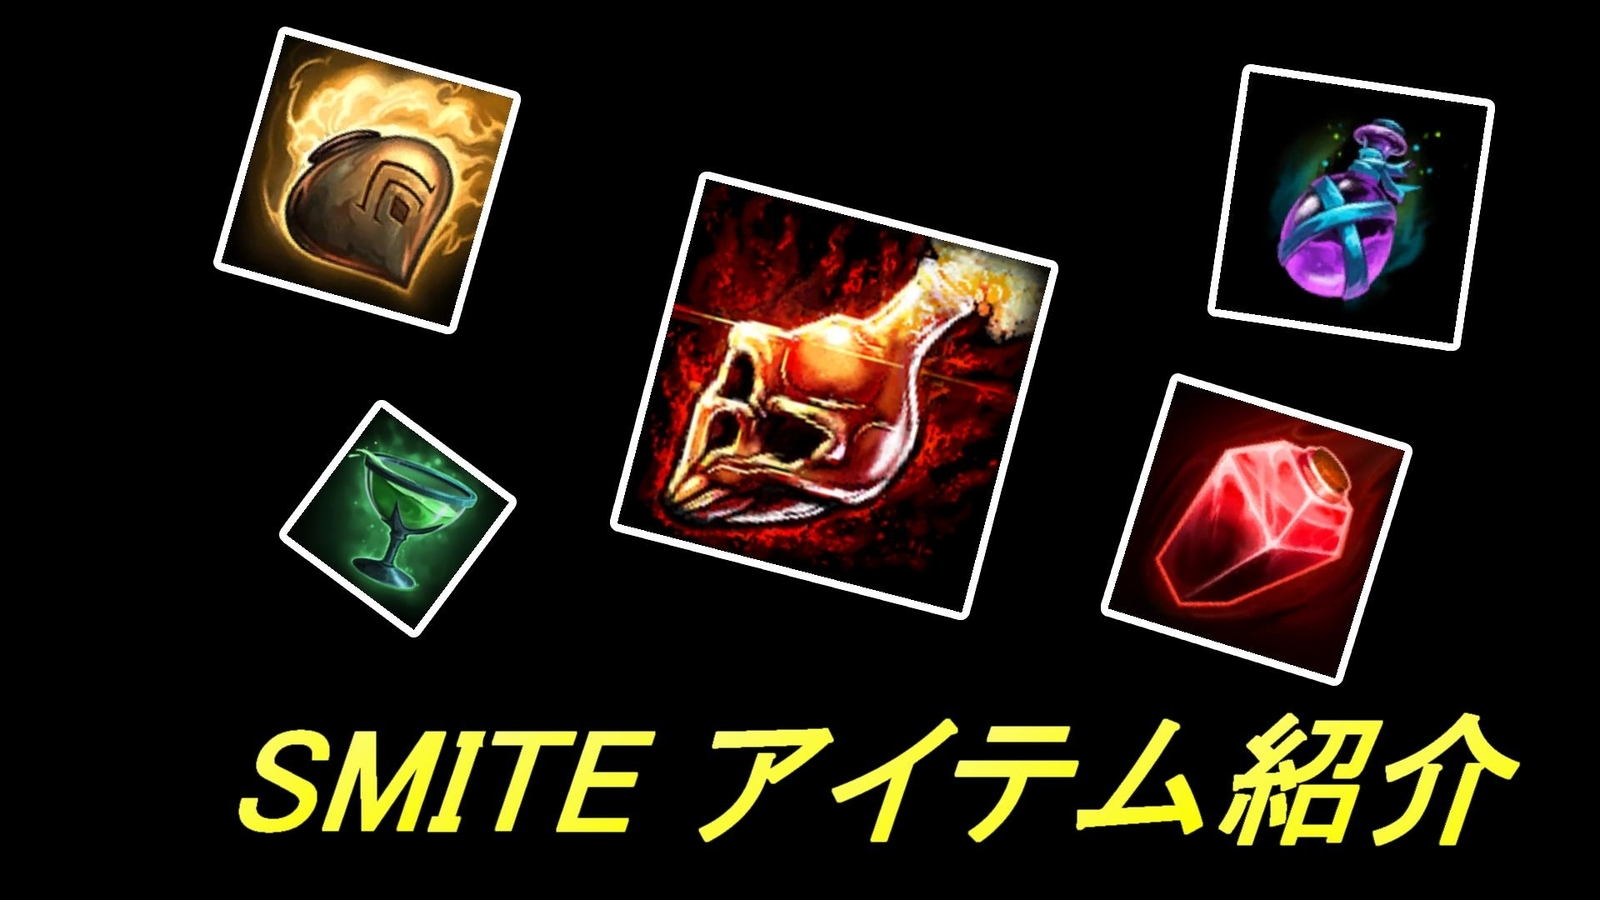 smite wiki アイテム